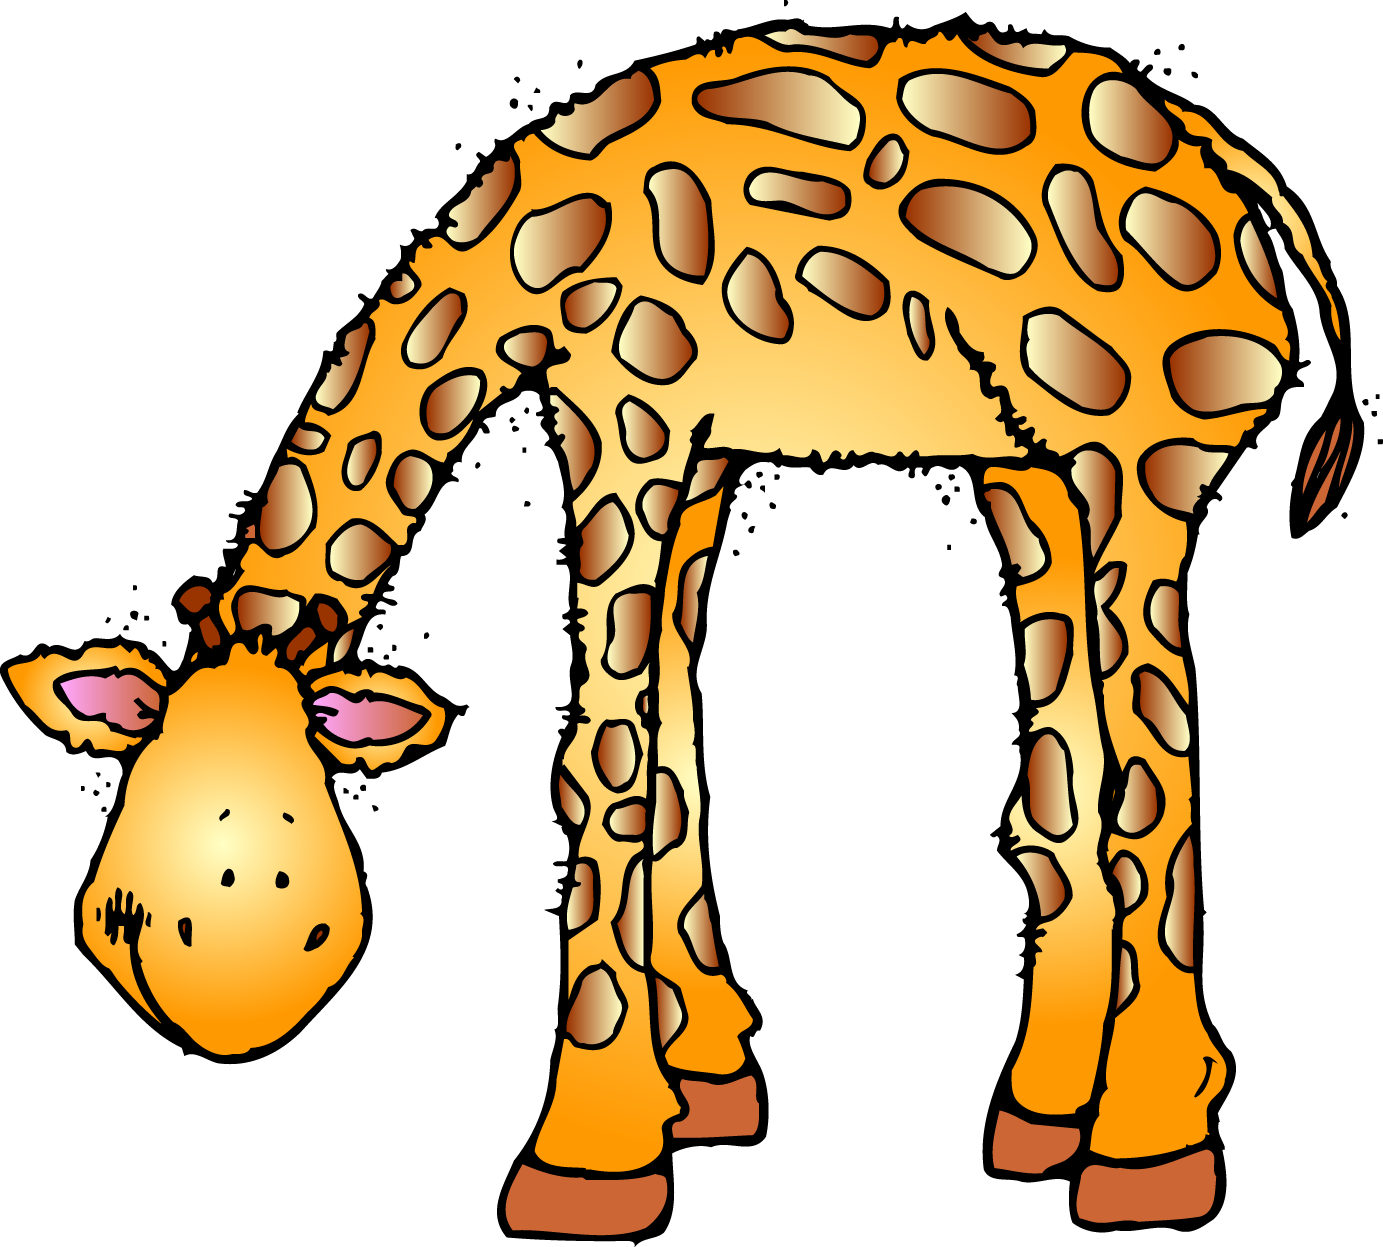 Zoo animals clipart free - Animals At The Zoo PNG